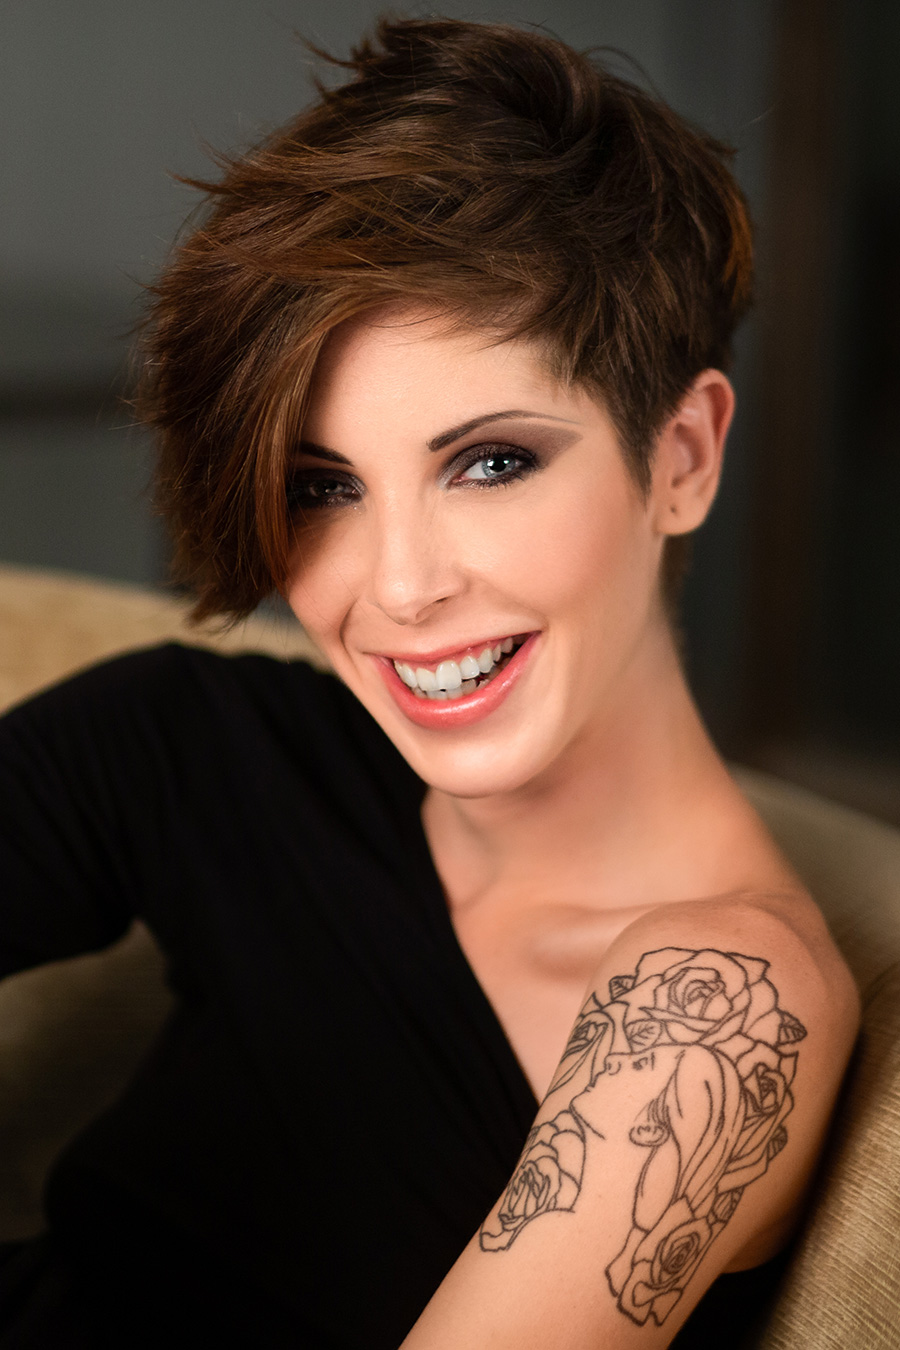 A photographic portrait of a beautiful girl with short brown hair and a tattoo on her arm, smiling at the camera, photography by Nukemedia